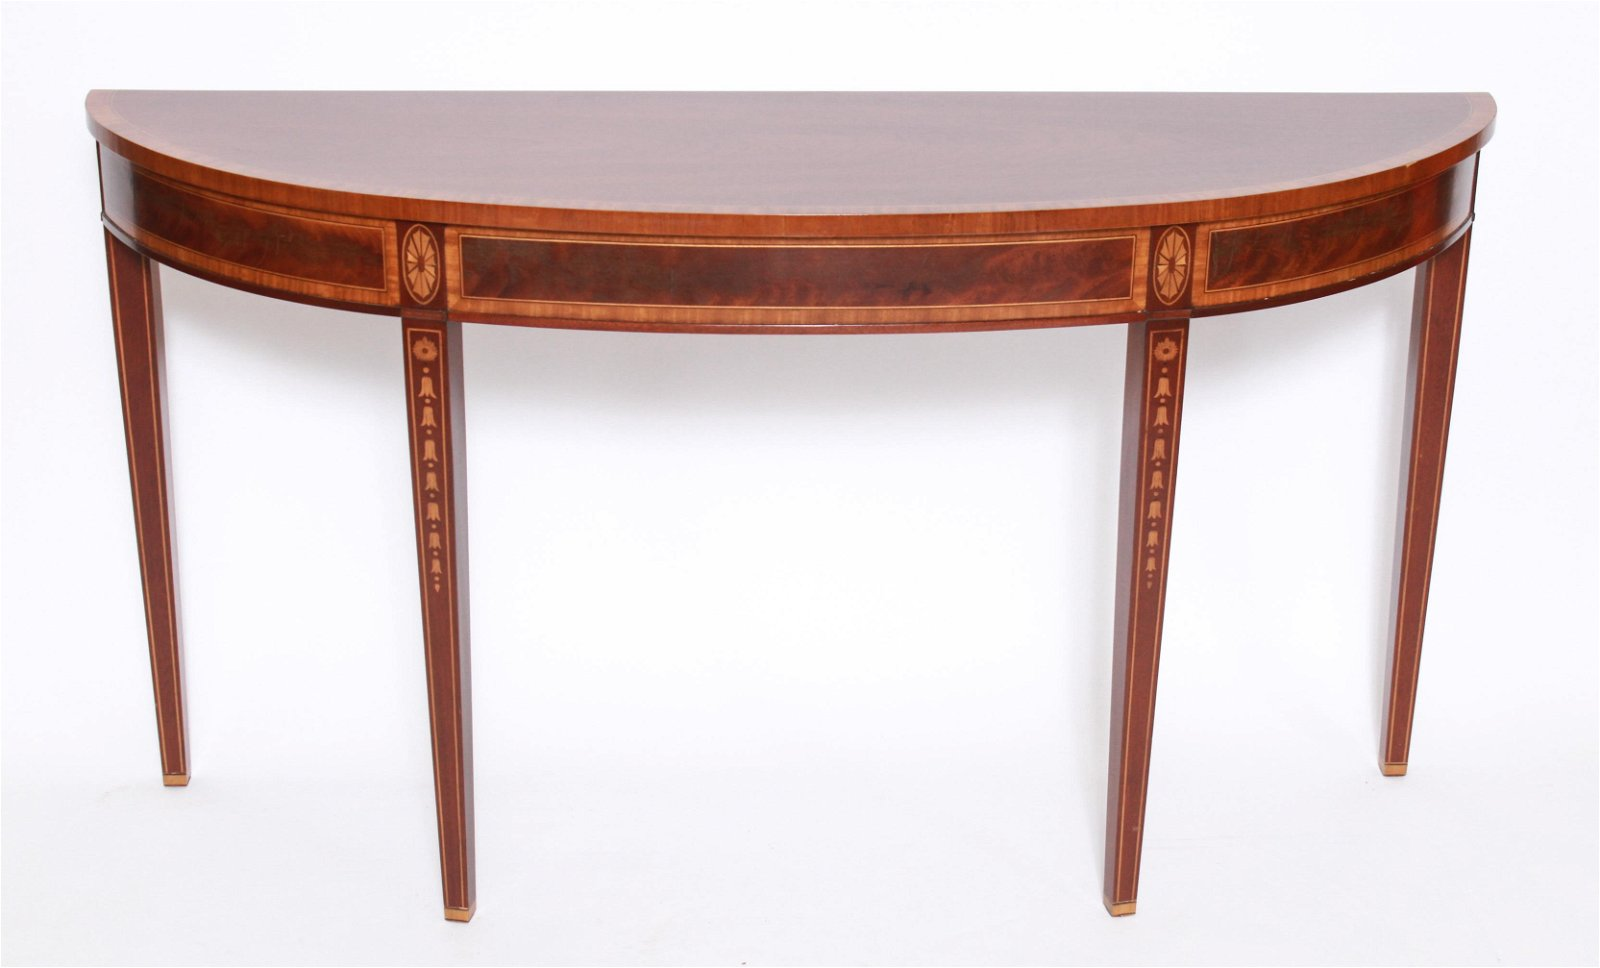 Hepplewhite Style Demilune Console Table